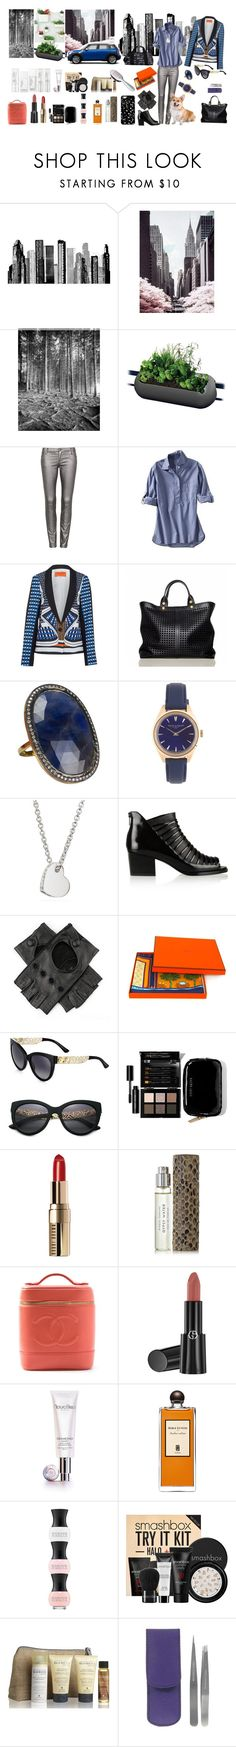 """Going for the weeck-end"" by nathalie-puex ❤ liked on Polyvore featuring RoomMates Decor, Geoffrey Agrons, Urbio, rephorm, sass & bide, Gap, Clover Canyon, Reed Krakoff, Corgi and The Gem Palace"